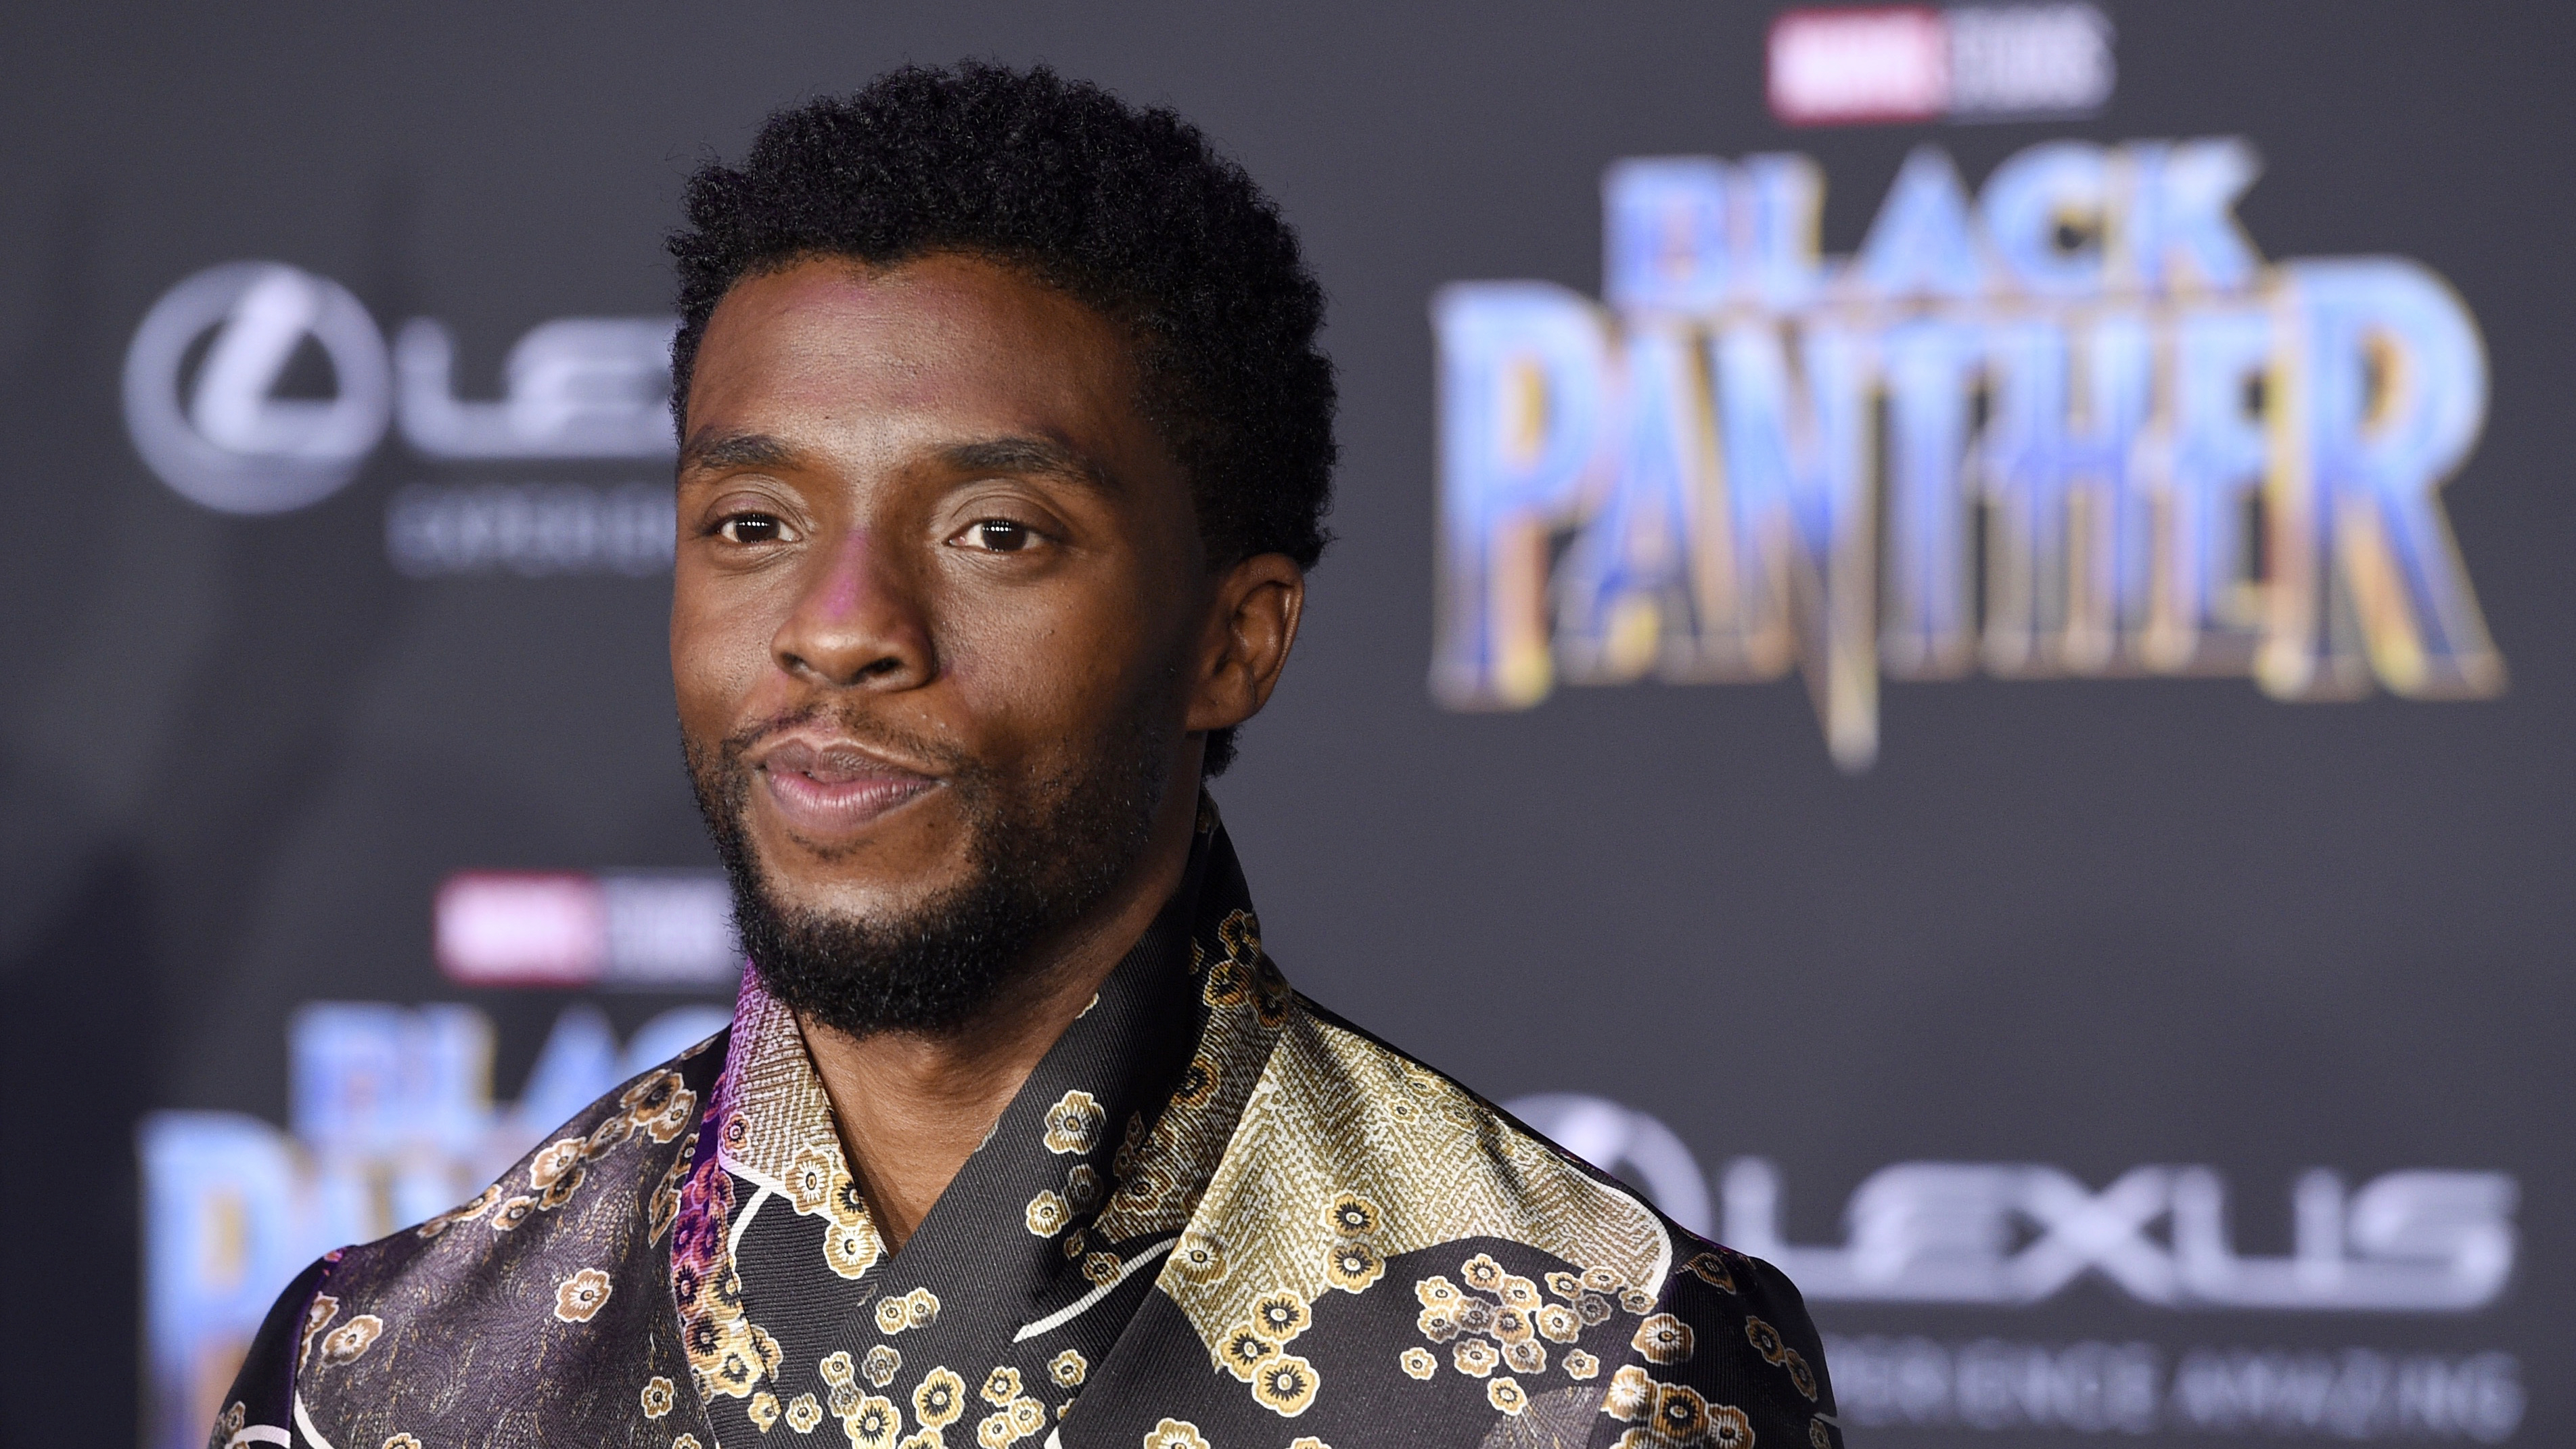 Black Panther: The official language of Wakanda be a real African langauge isiXhosa